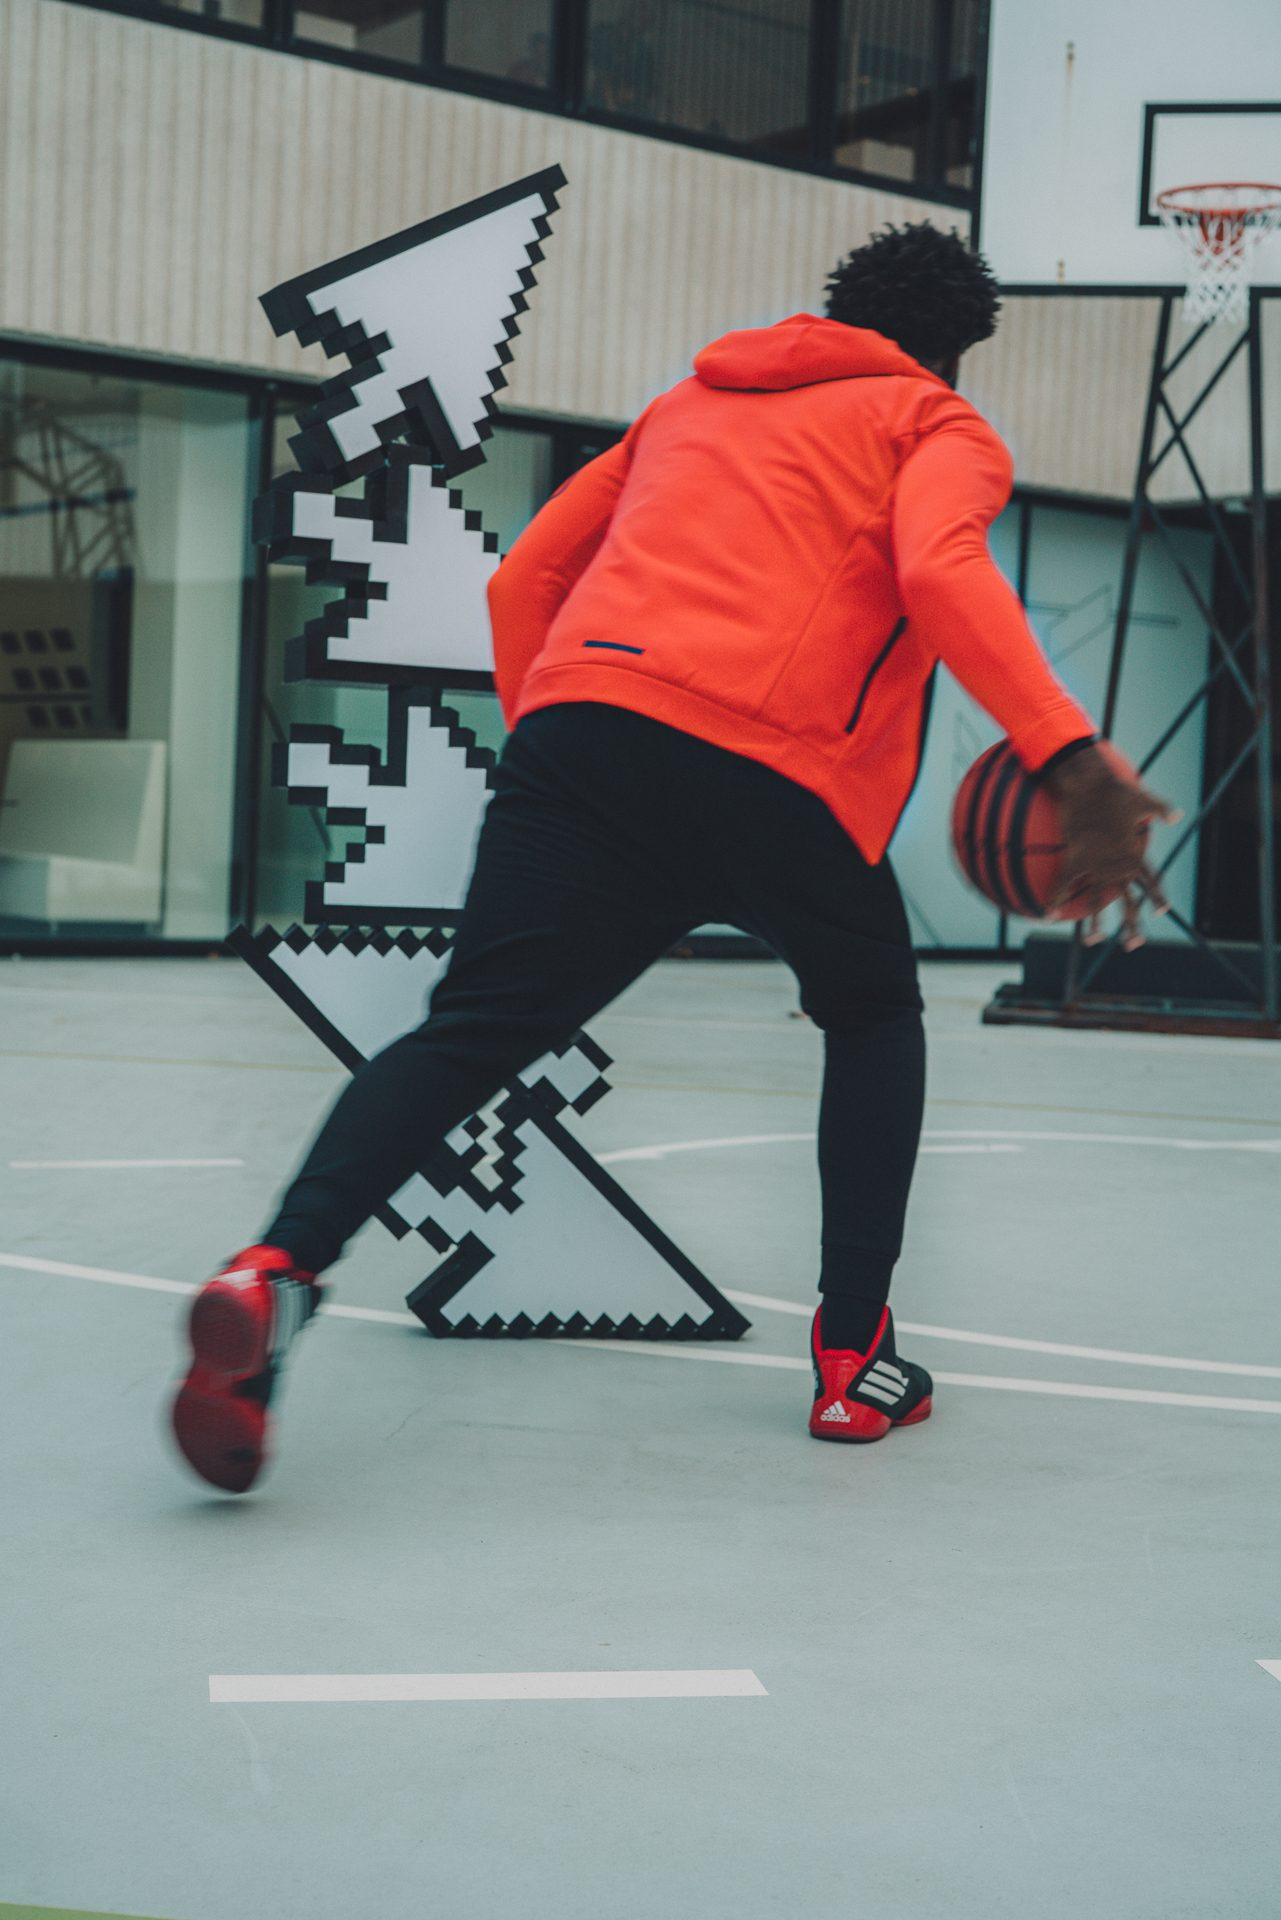 Man playing basketball against mouse cursors. adidas, HereToCreate, Basketball, adidas employee, Digital, IT, Analytics, teamwork, mindset, strategy